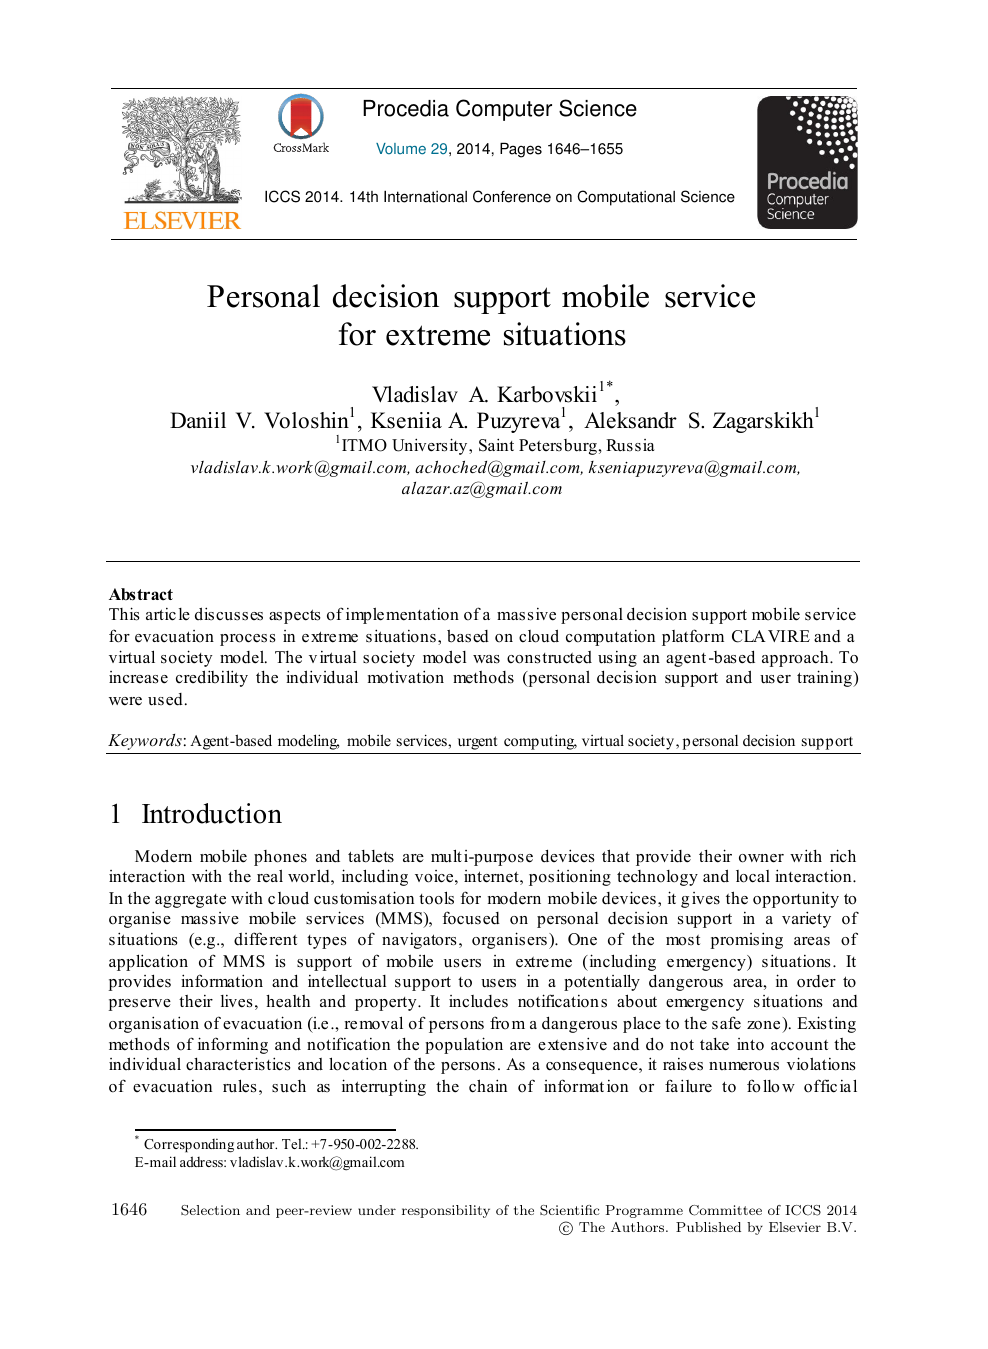 Personal Decision Support Mobile Service for Extreme